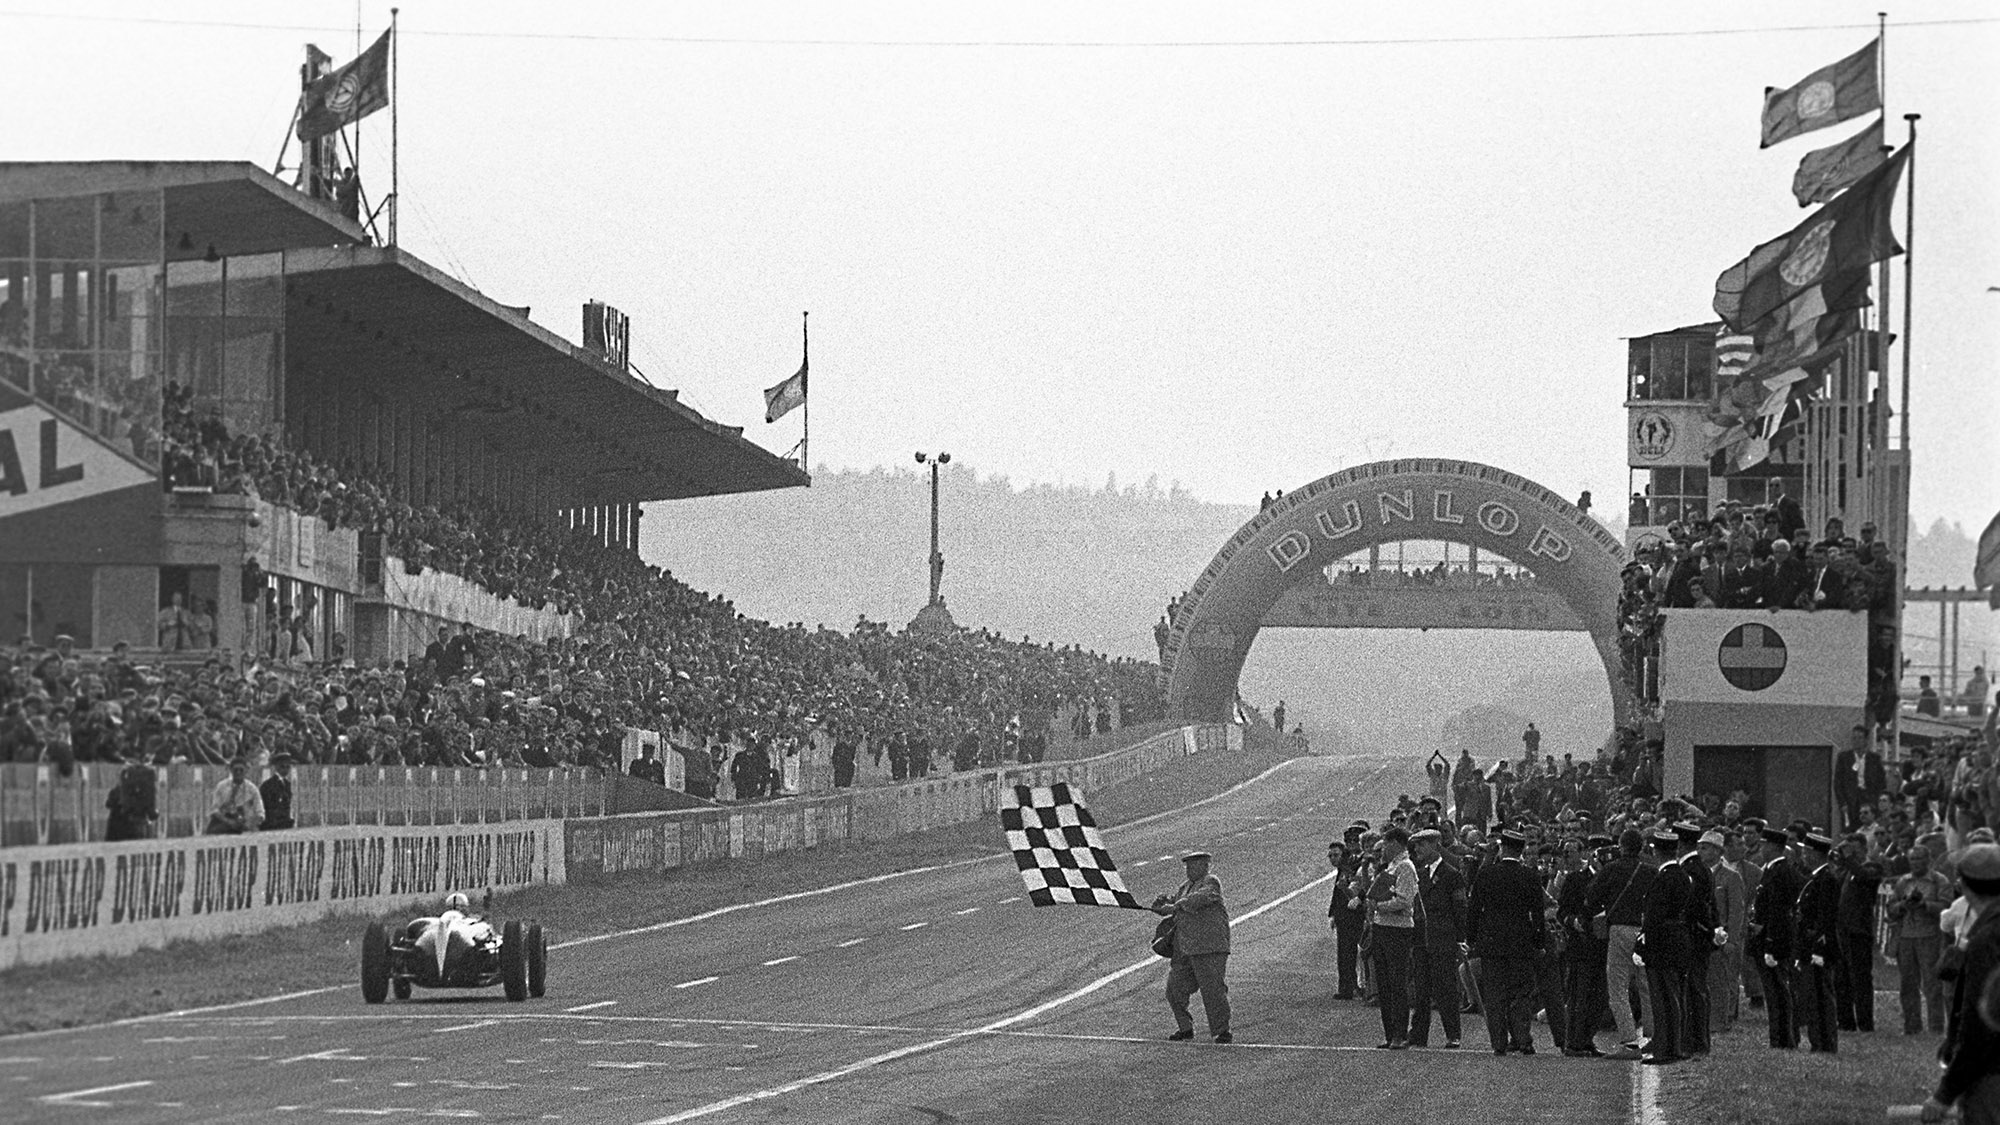 Jack Brabham takes the chequered flag to win in the 1960 French Grand Prix at Reims